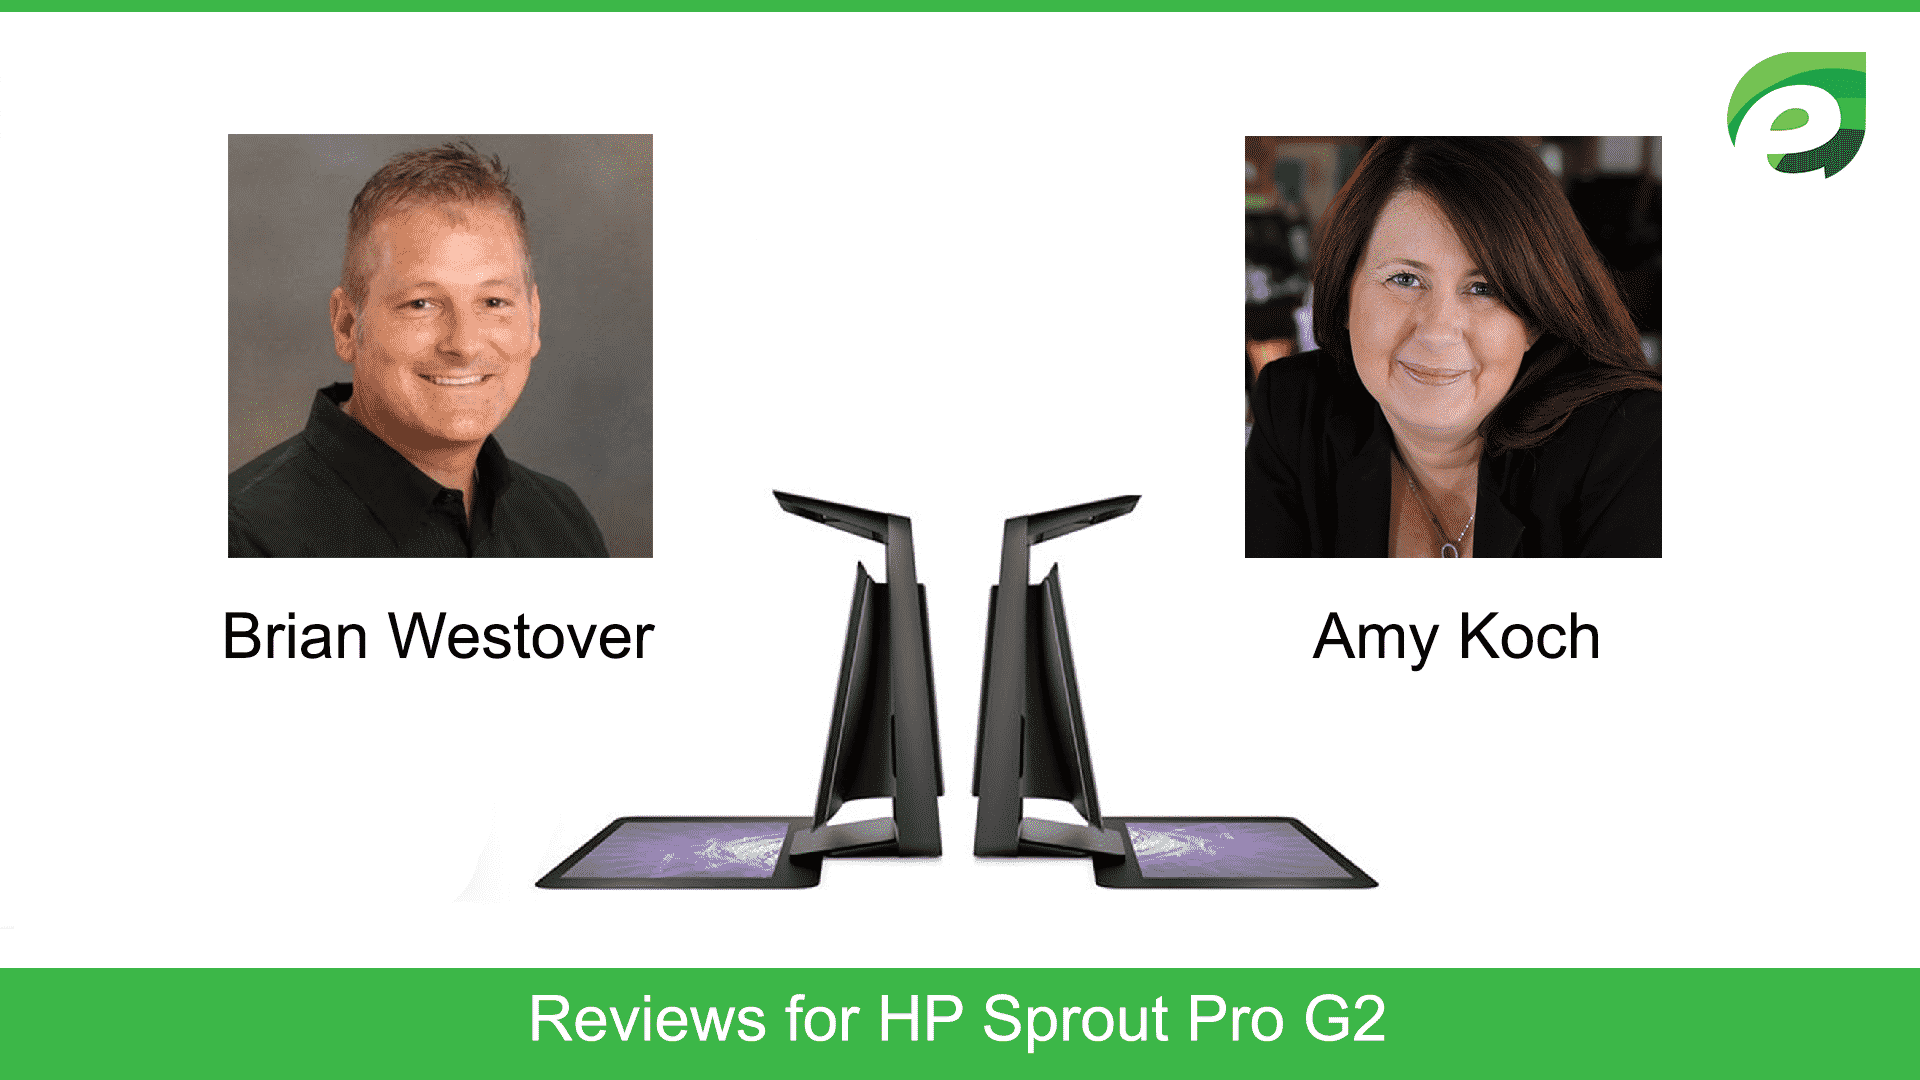 hp sprout pro G2 - reviews